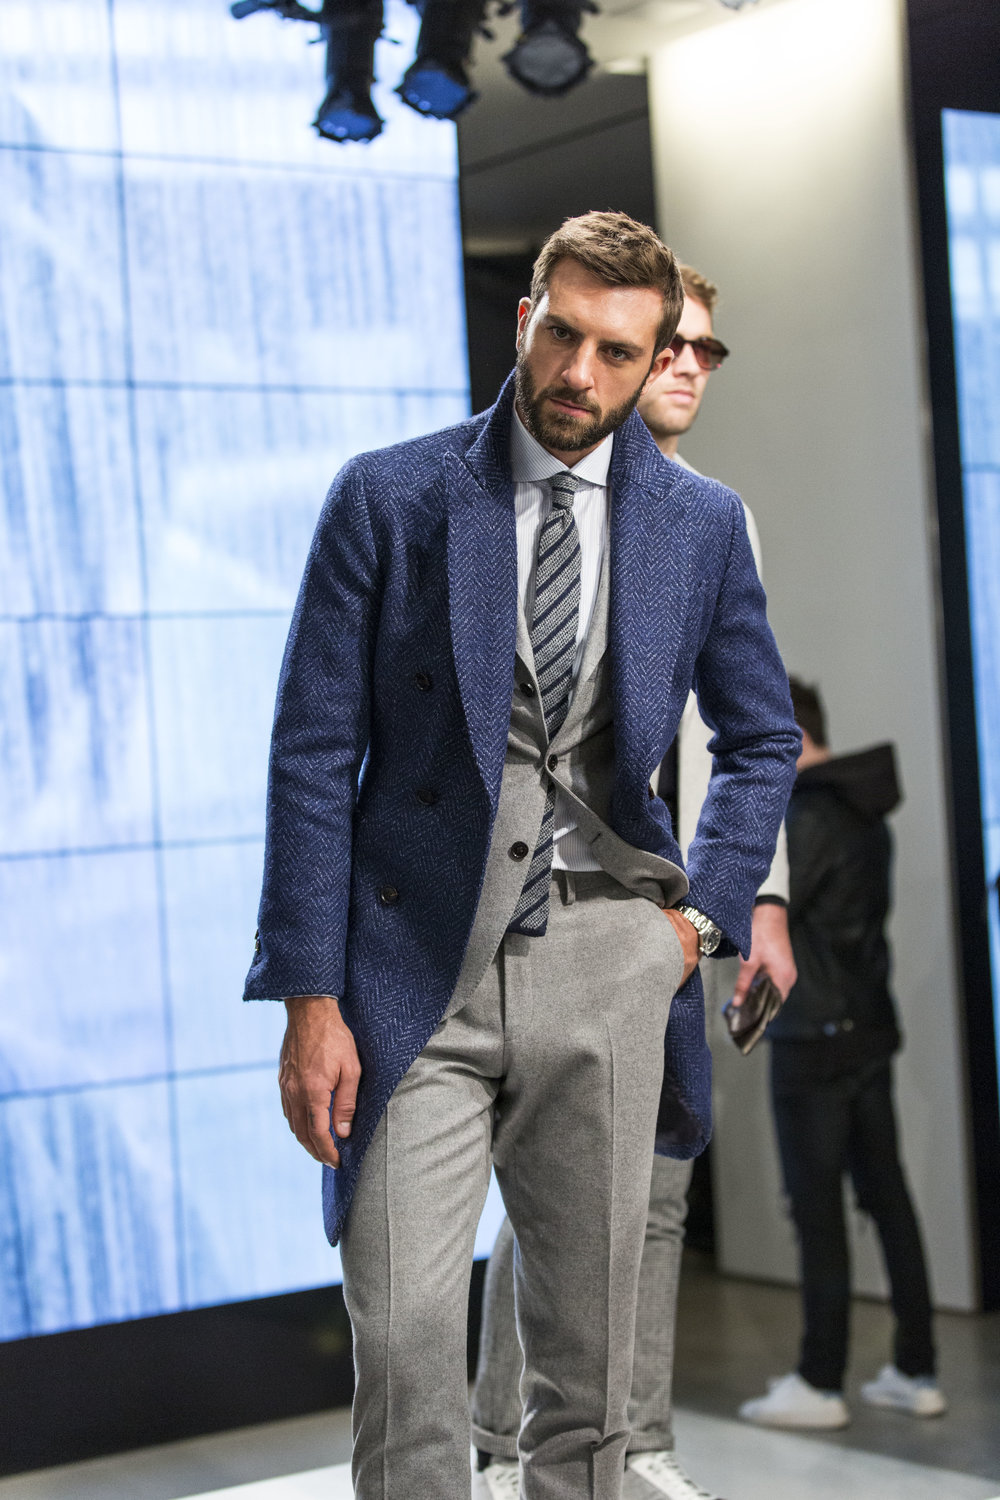 SUITSUPPLY-FALL -WINTER-NYFWM2018-MENS-COLLECTION- AW18-NYFWM-6.jpg